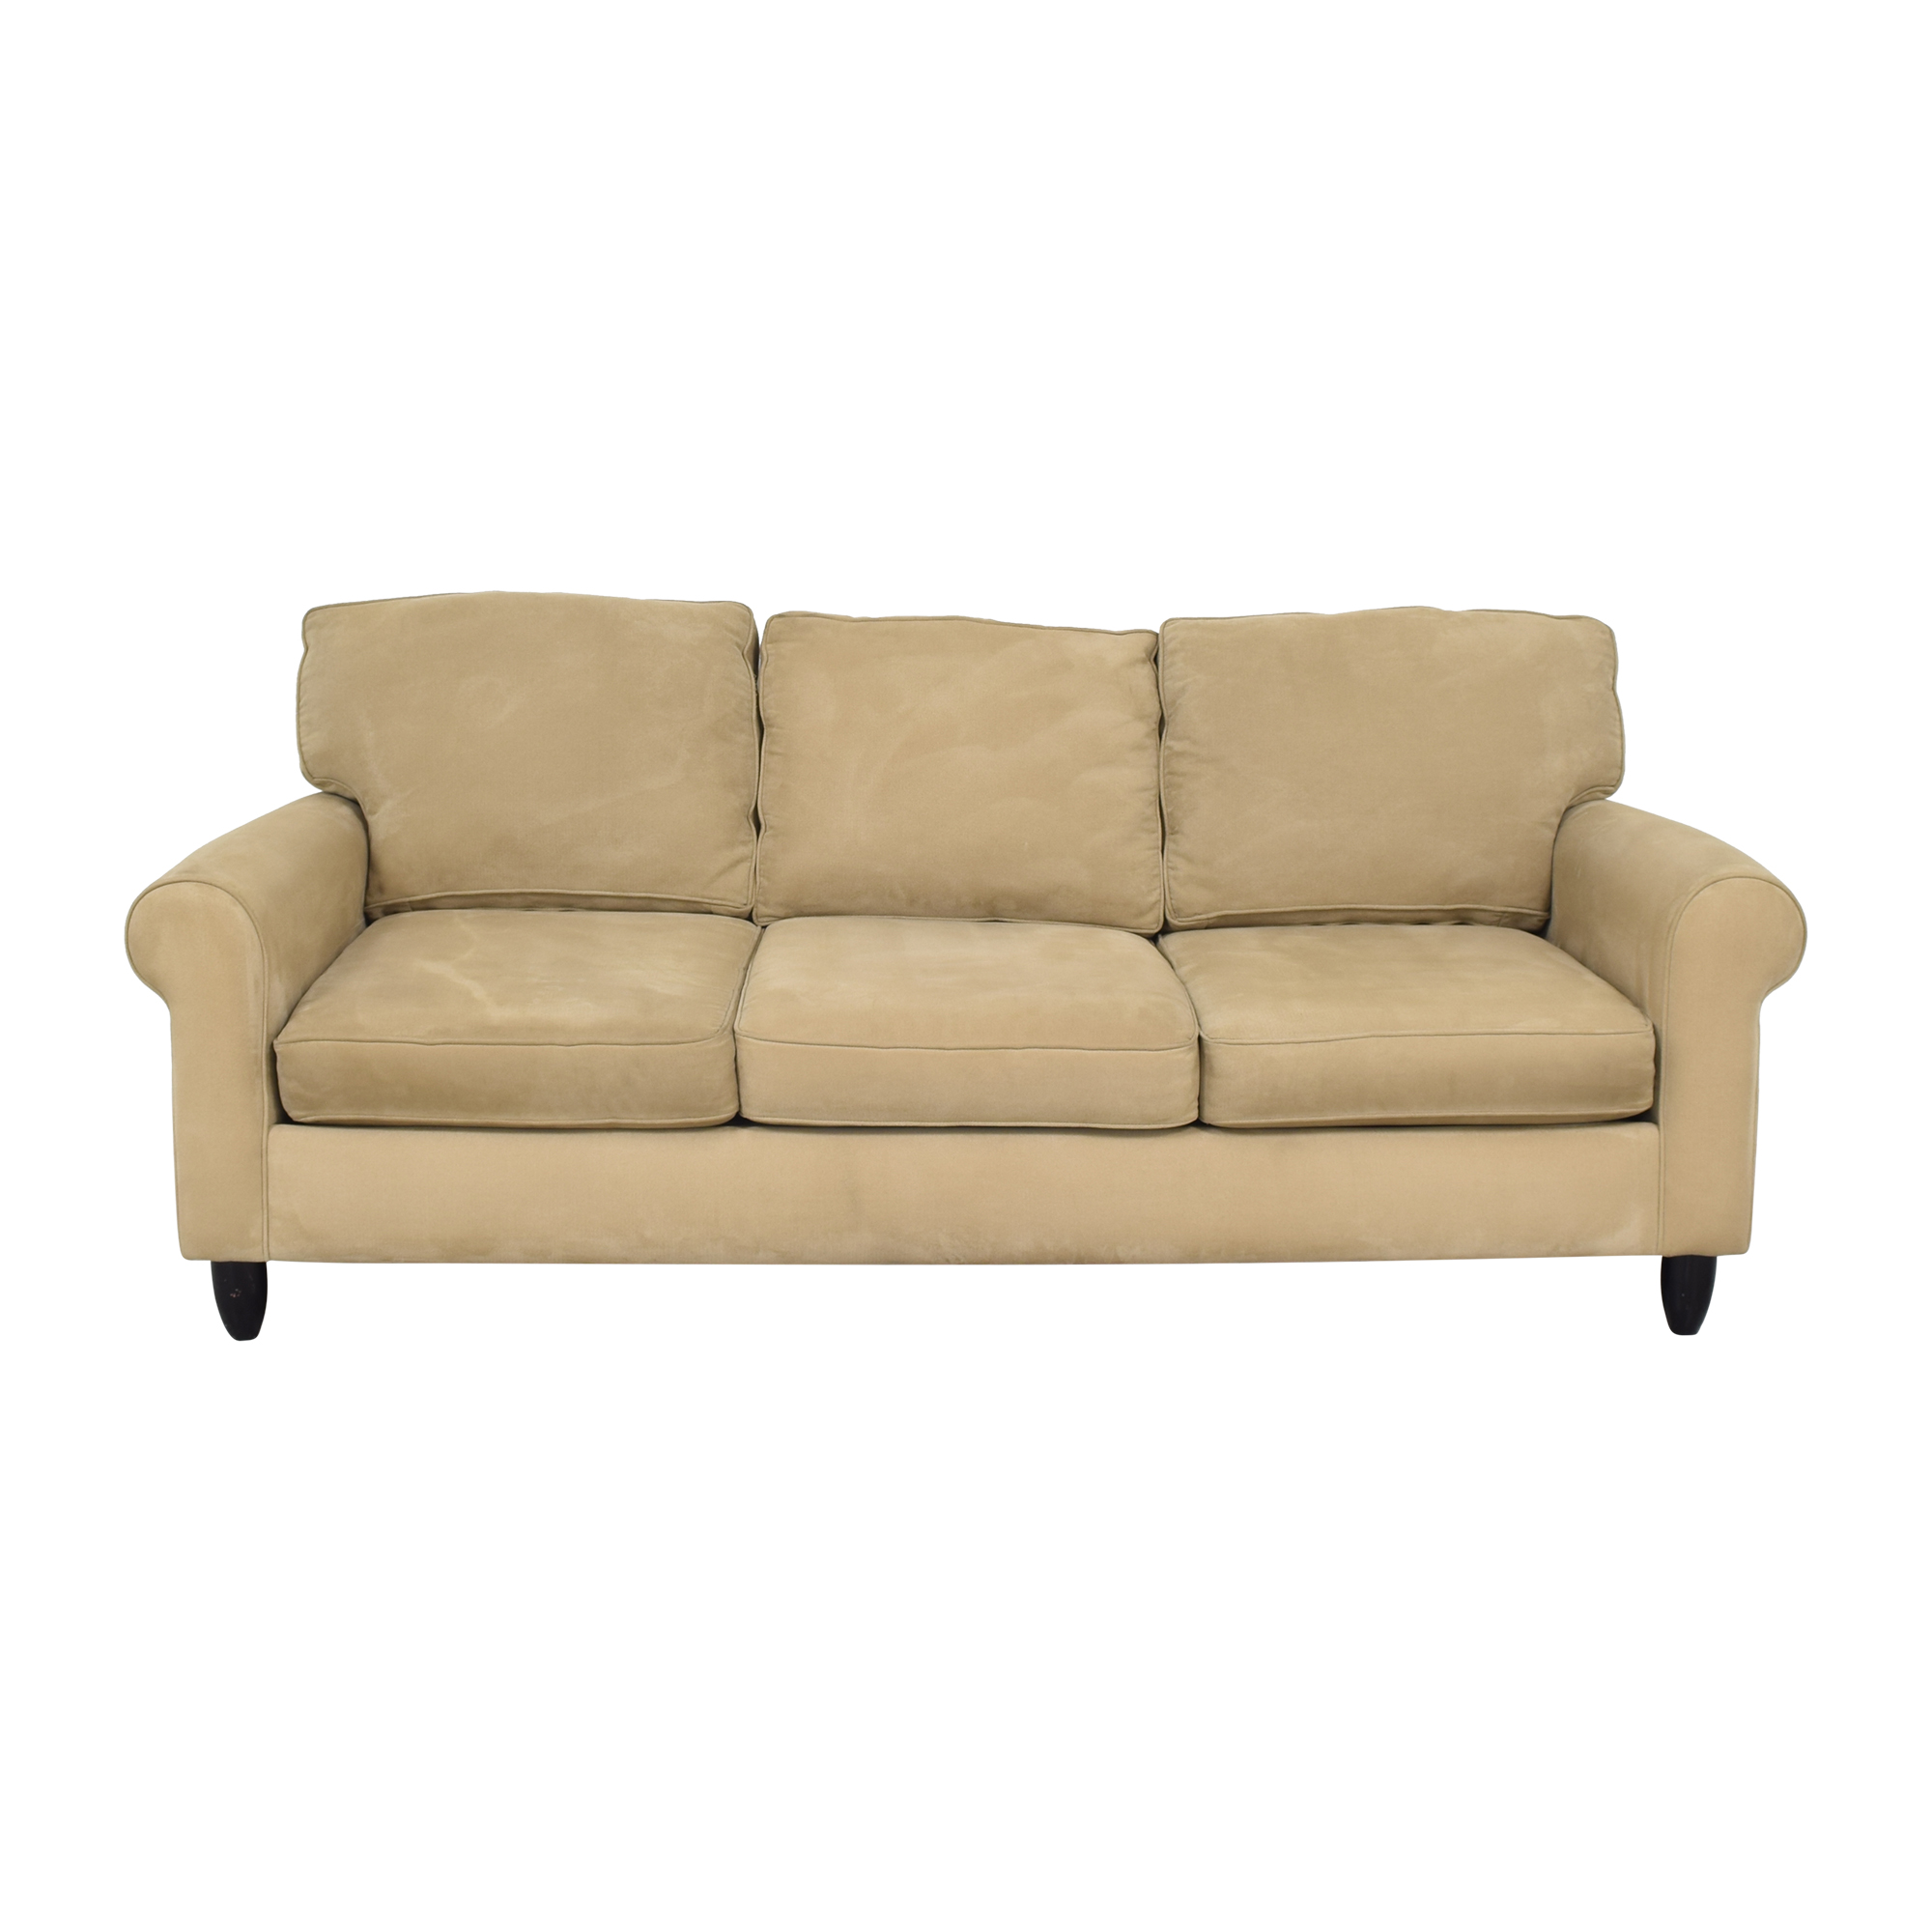 Havertys Havertys Corey Sofa ct